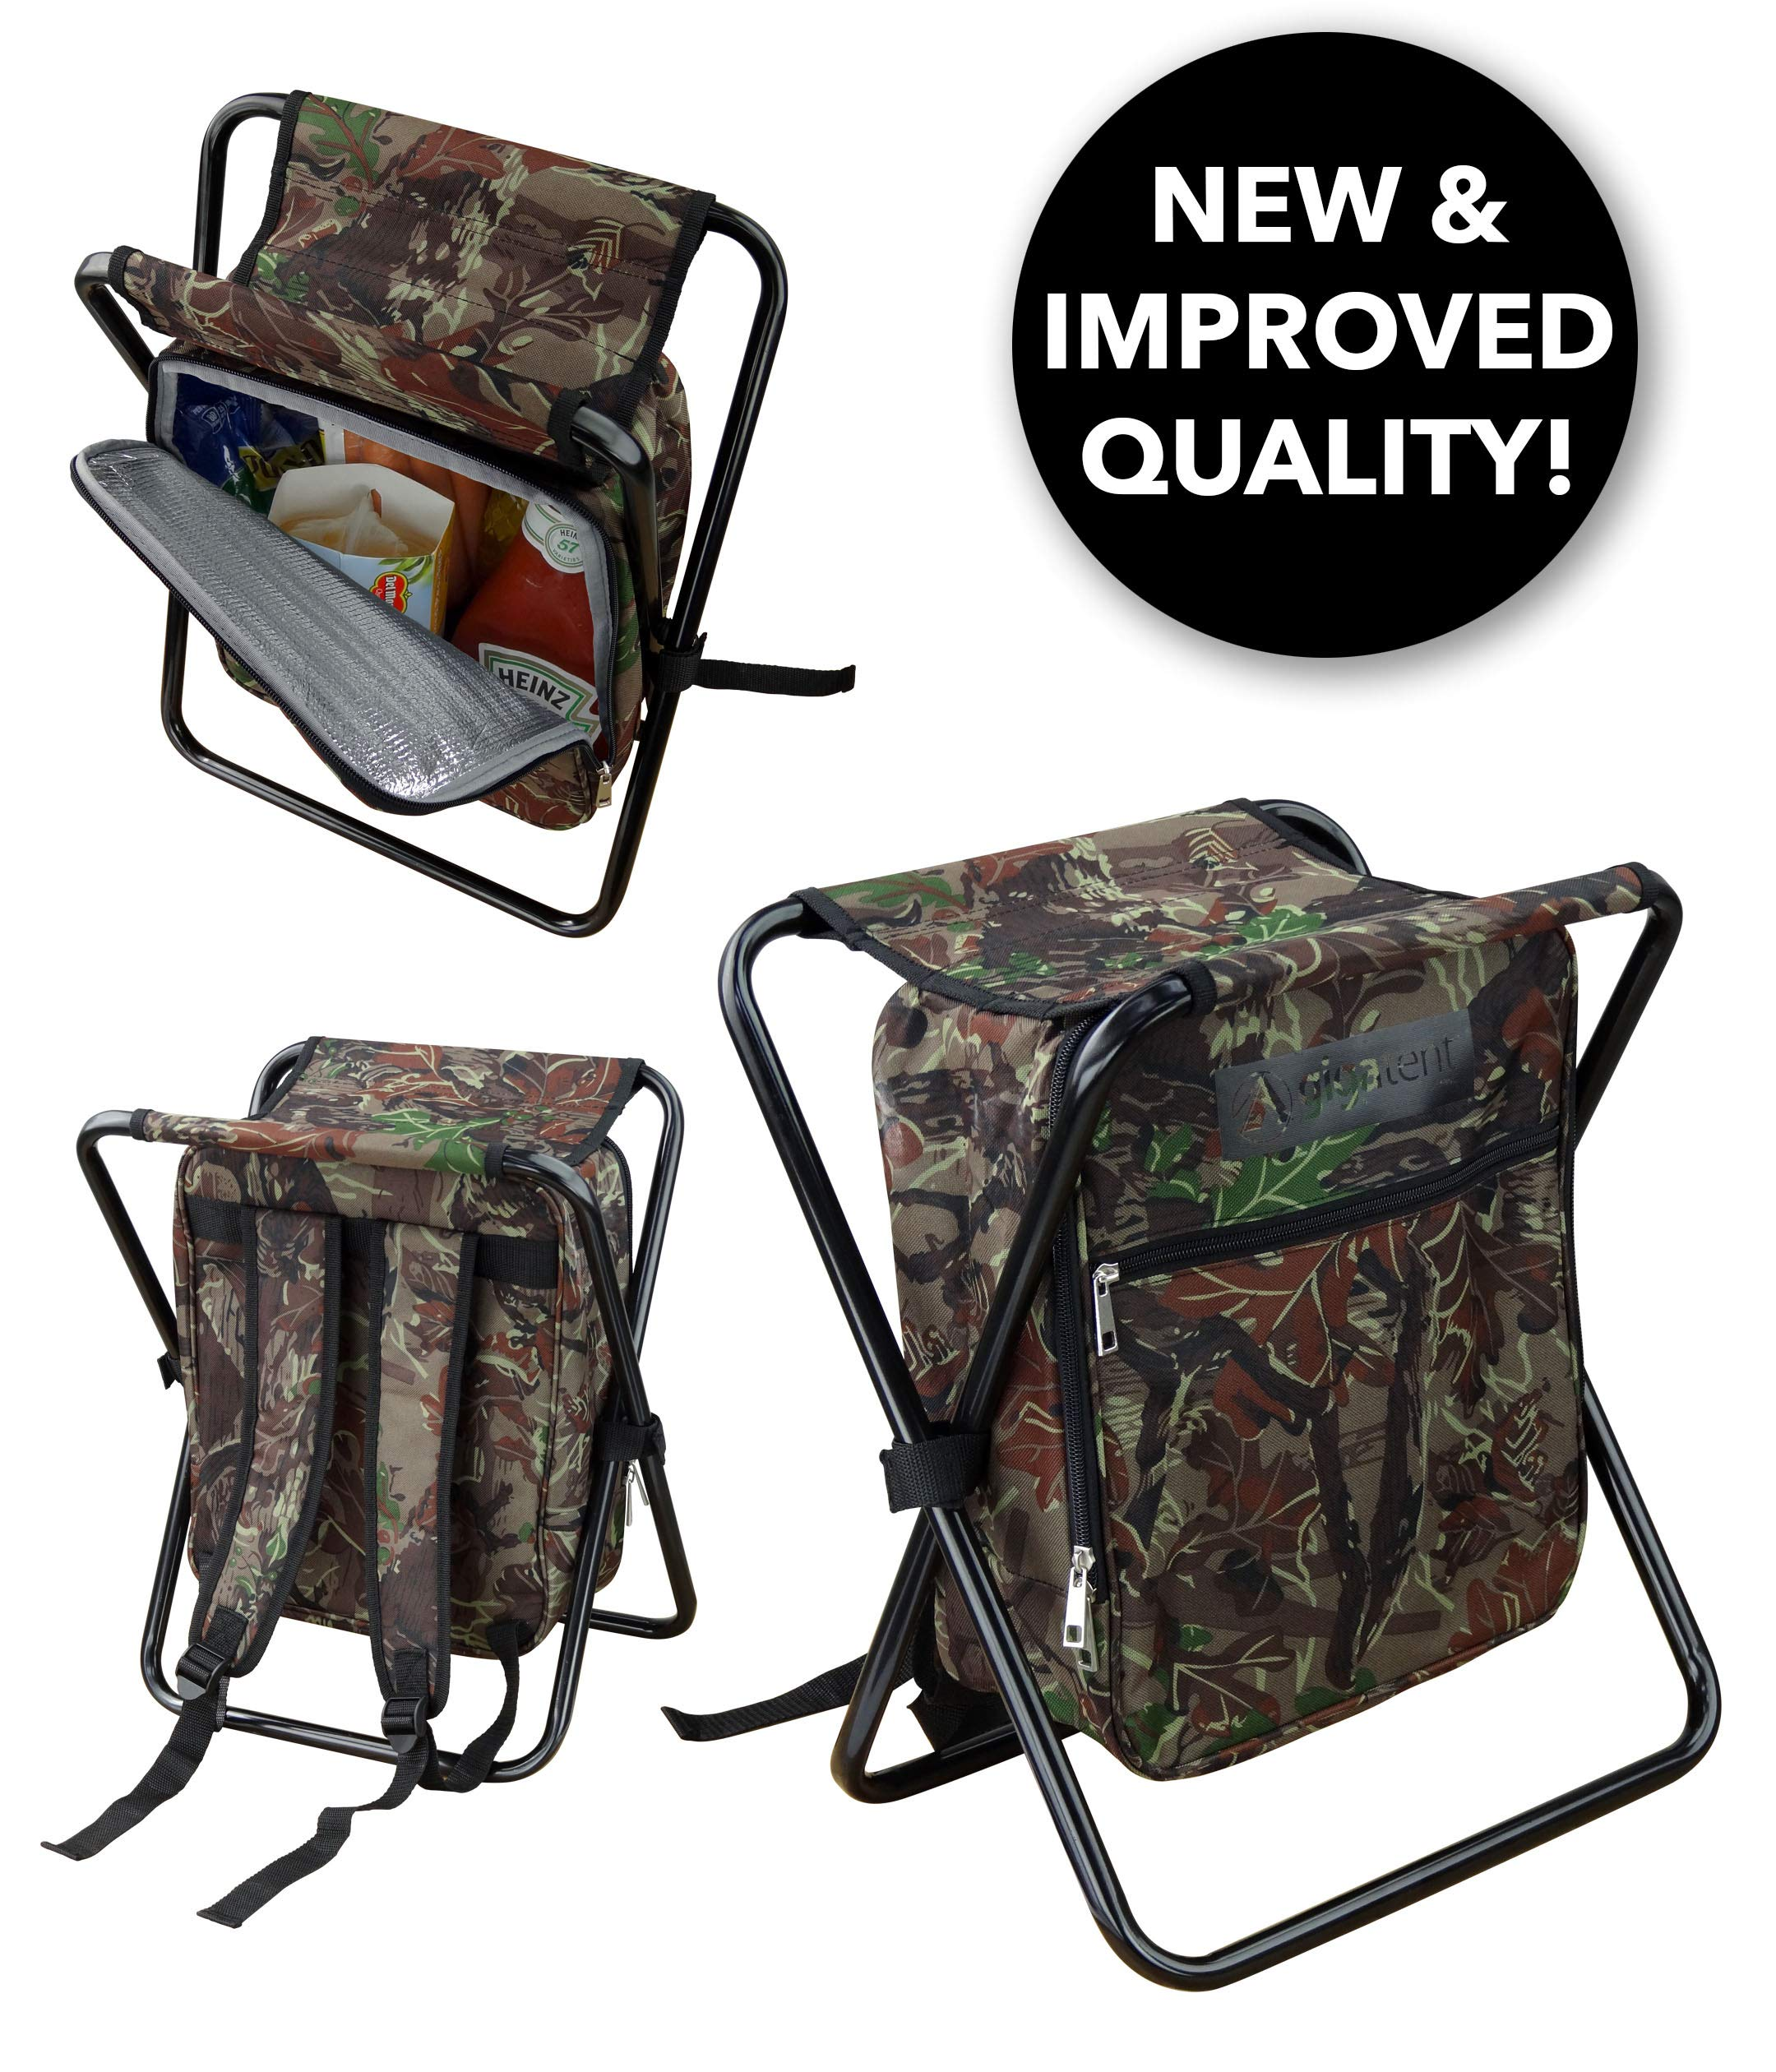 GigaTent Folding Cooler and Stool Backpack - Multifunction Collapsible Camping Seat and Insulated Ice Bag with Padded Shoulder Straps (Camo) by GigaTent